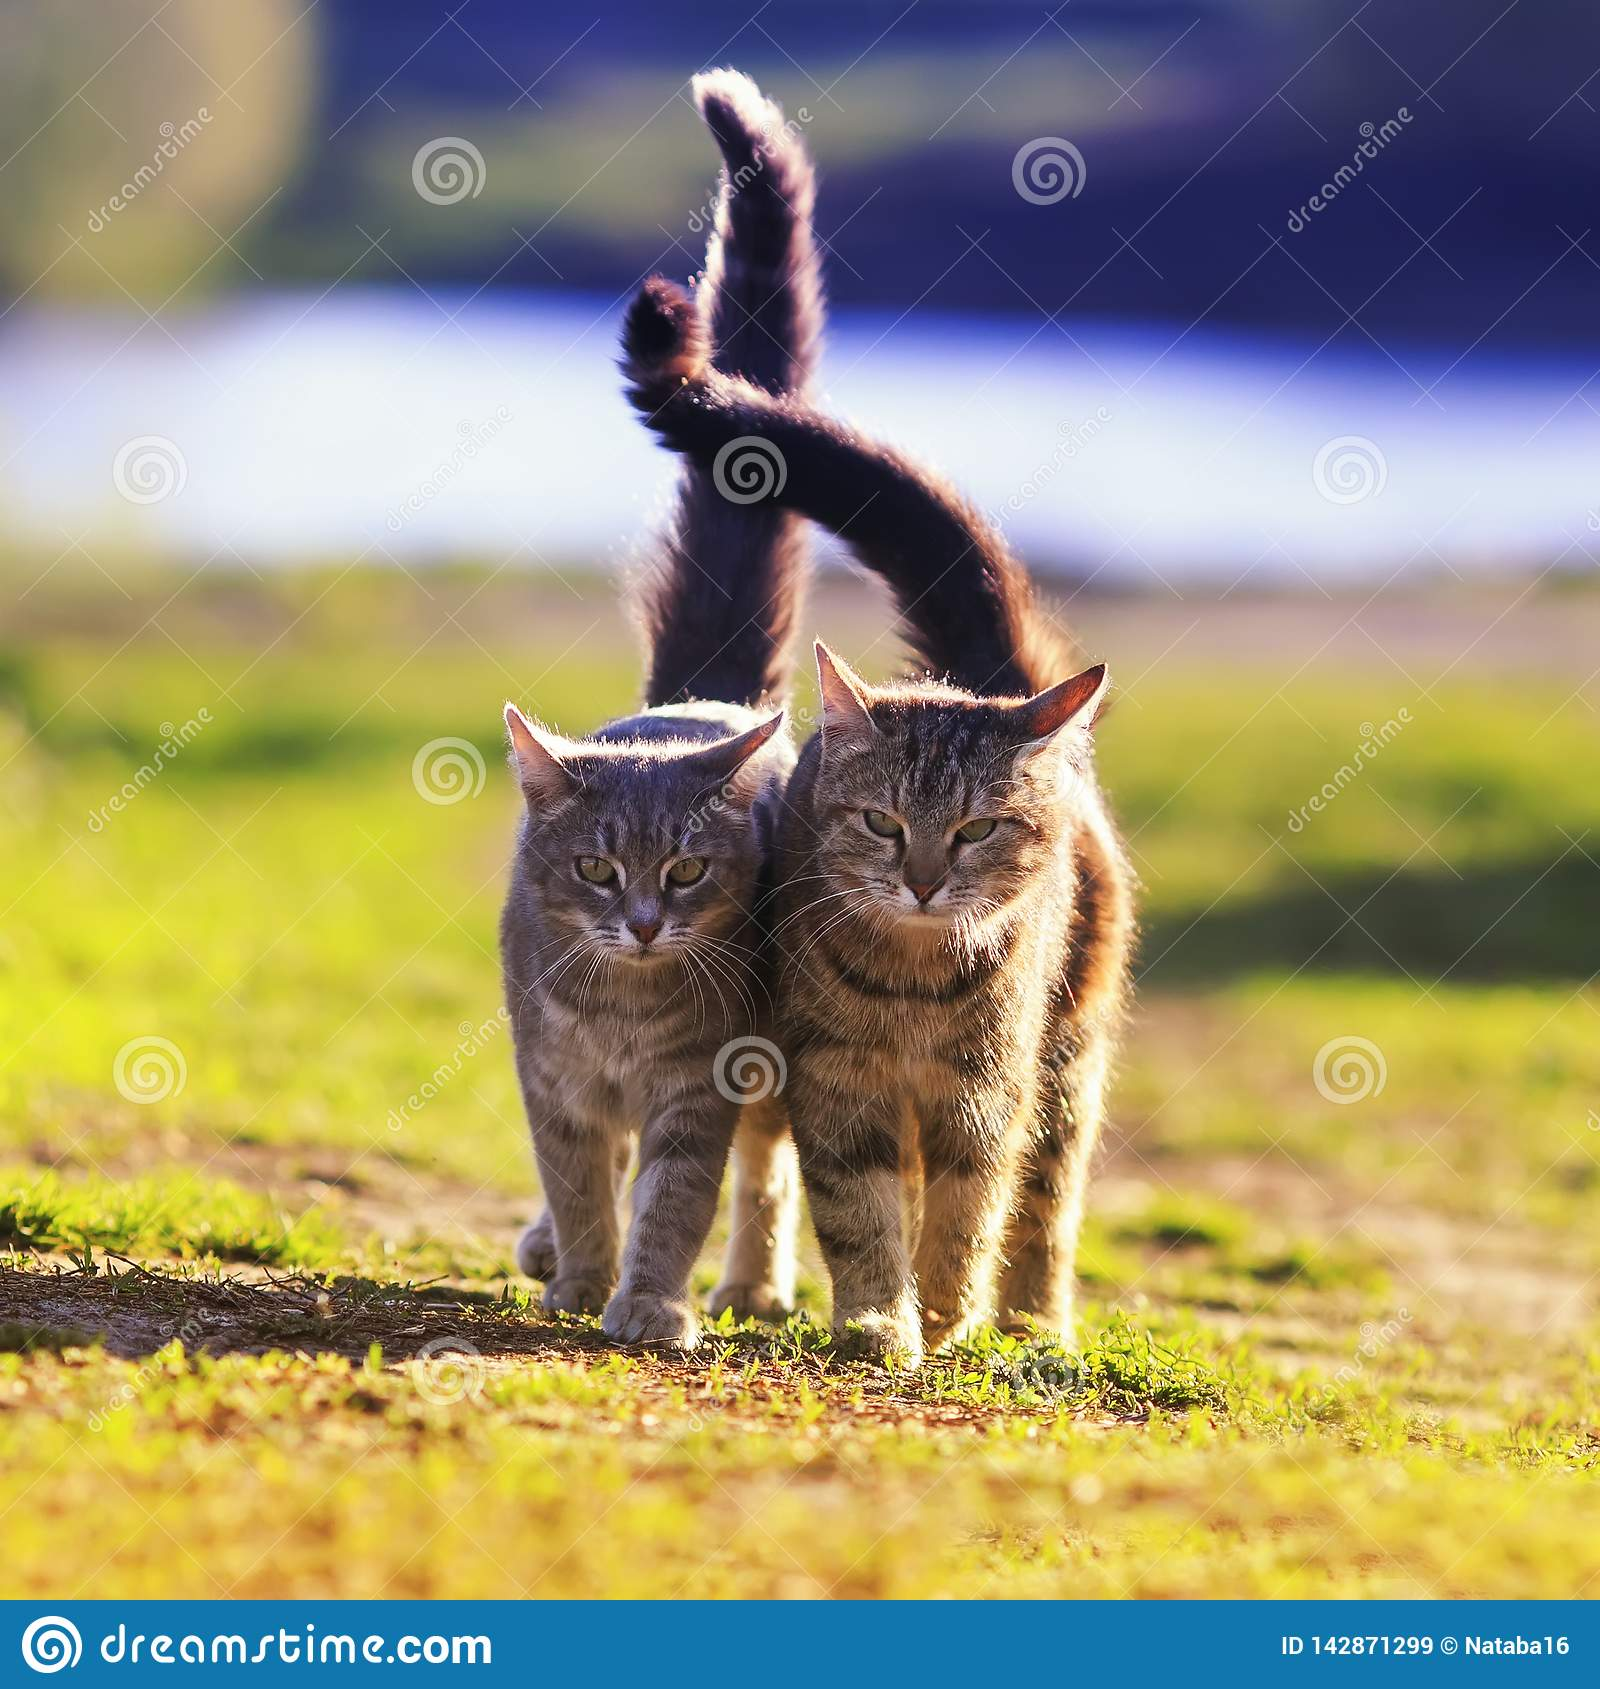 Two beautiful young cats walk in a Sunny meadow on a clear spring day raising their tails